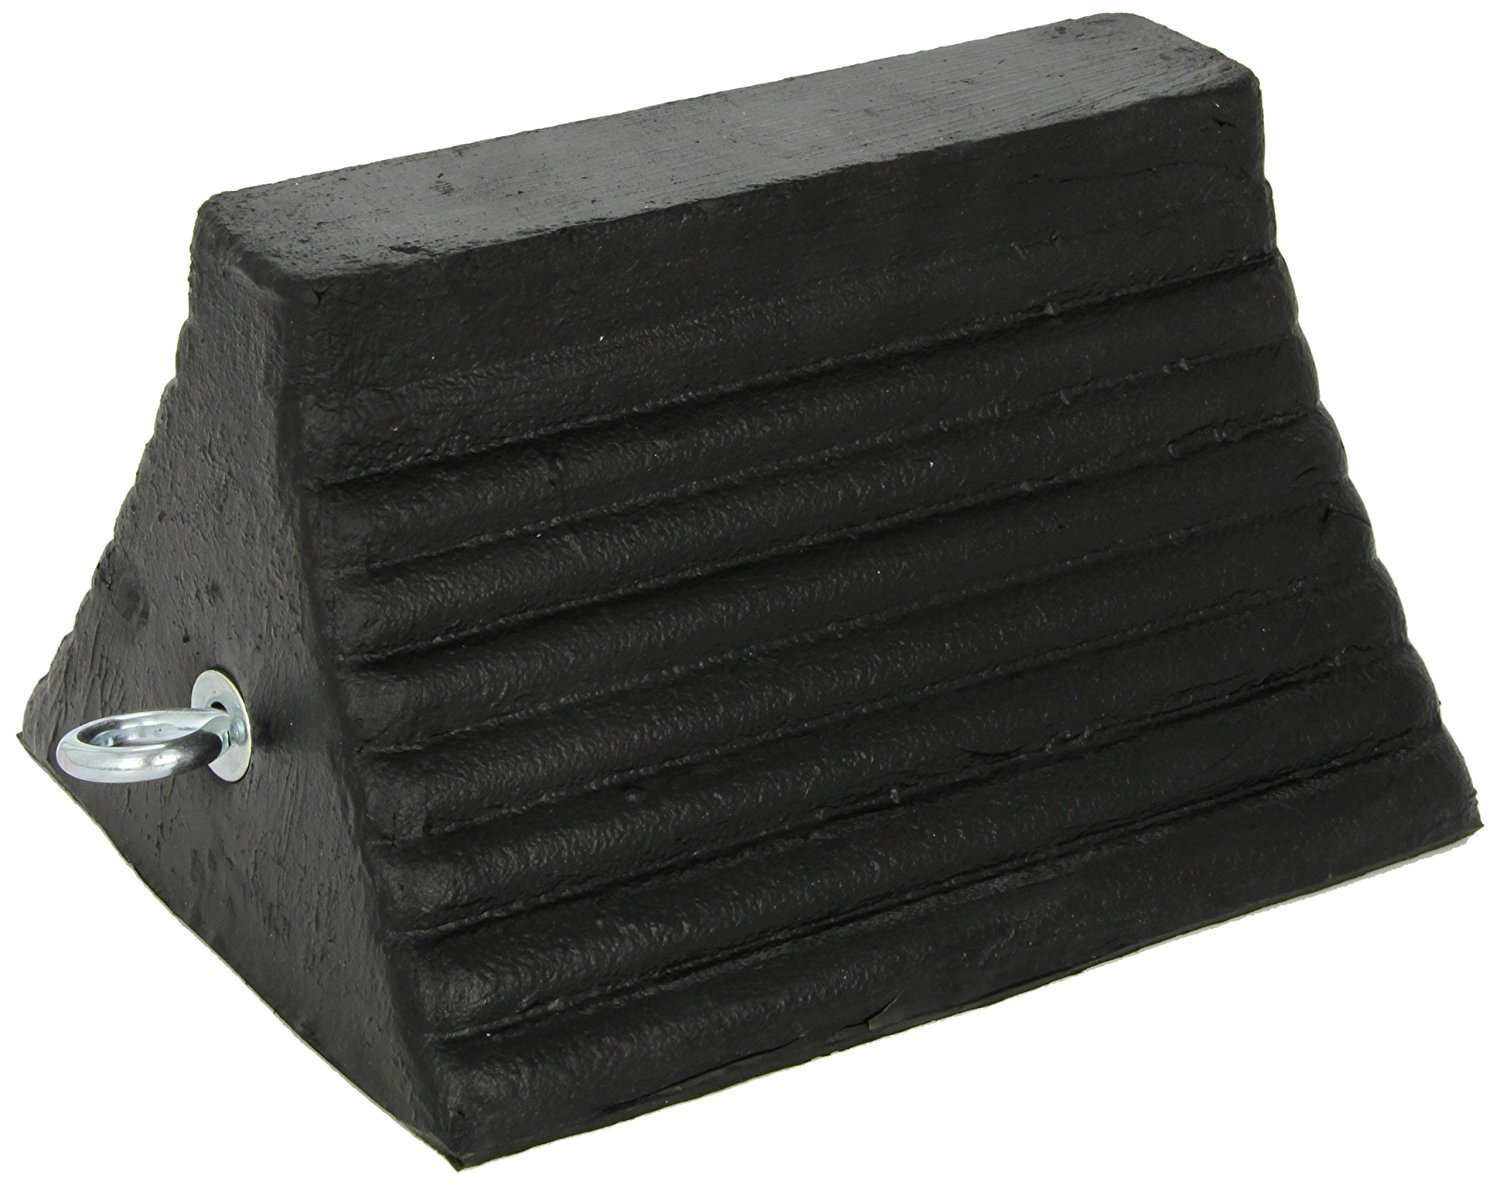 Wheel Chock, 8 in W x 10 in L x 6 in H, Rubber, Black (10 Pack)